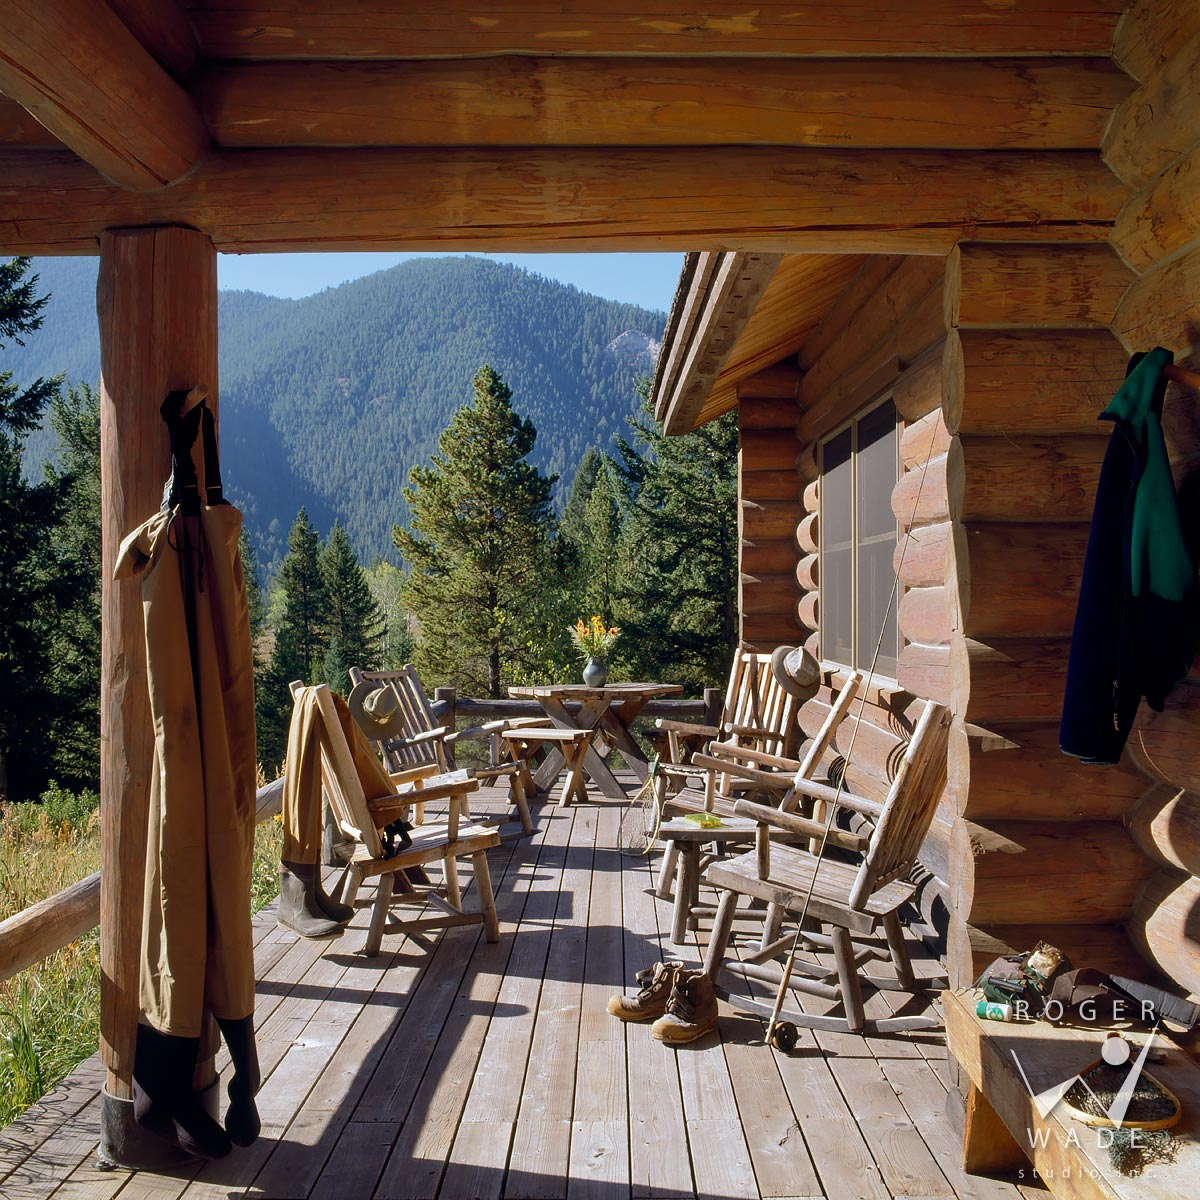 roger wade studio rustic log home photography, porch sitting area looking out to mountain view, private cabin, big sky, montana